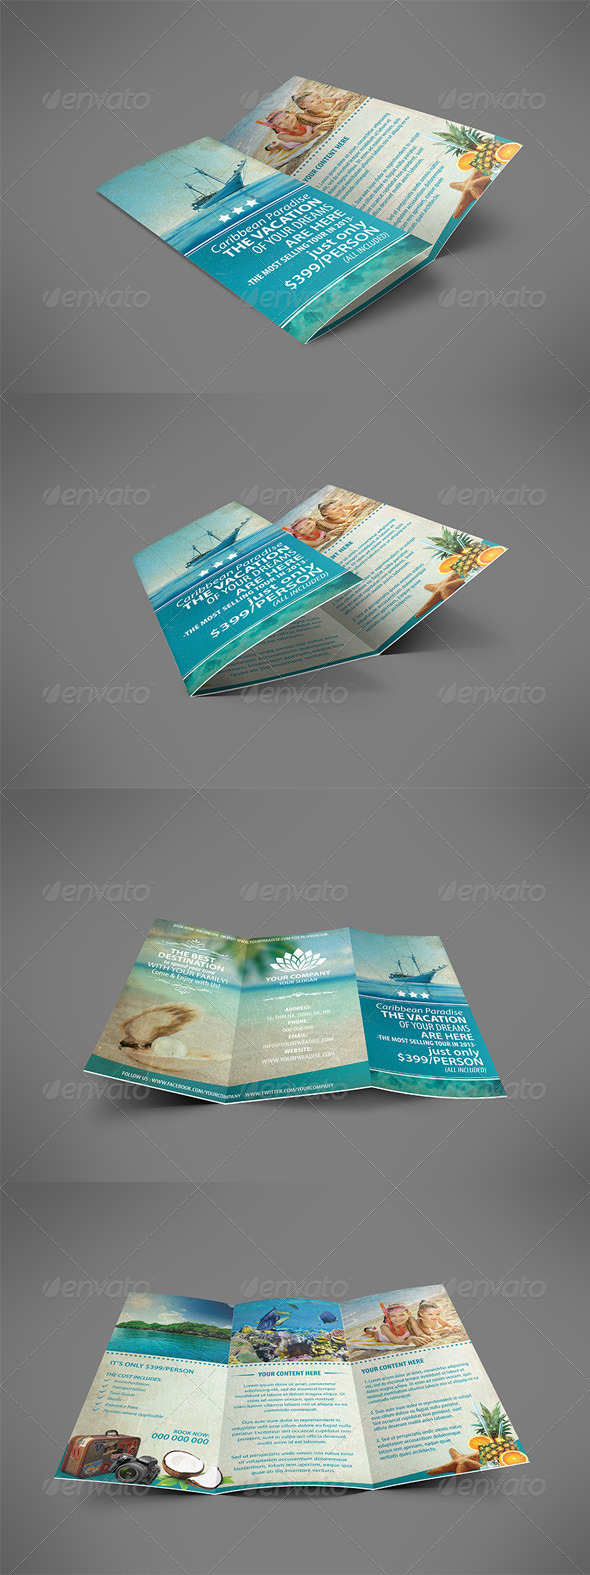 GraphicRiver Vintage Travel Brochure Tri-fold 3938095